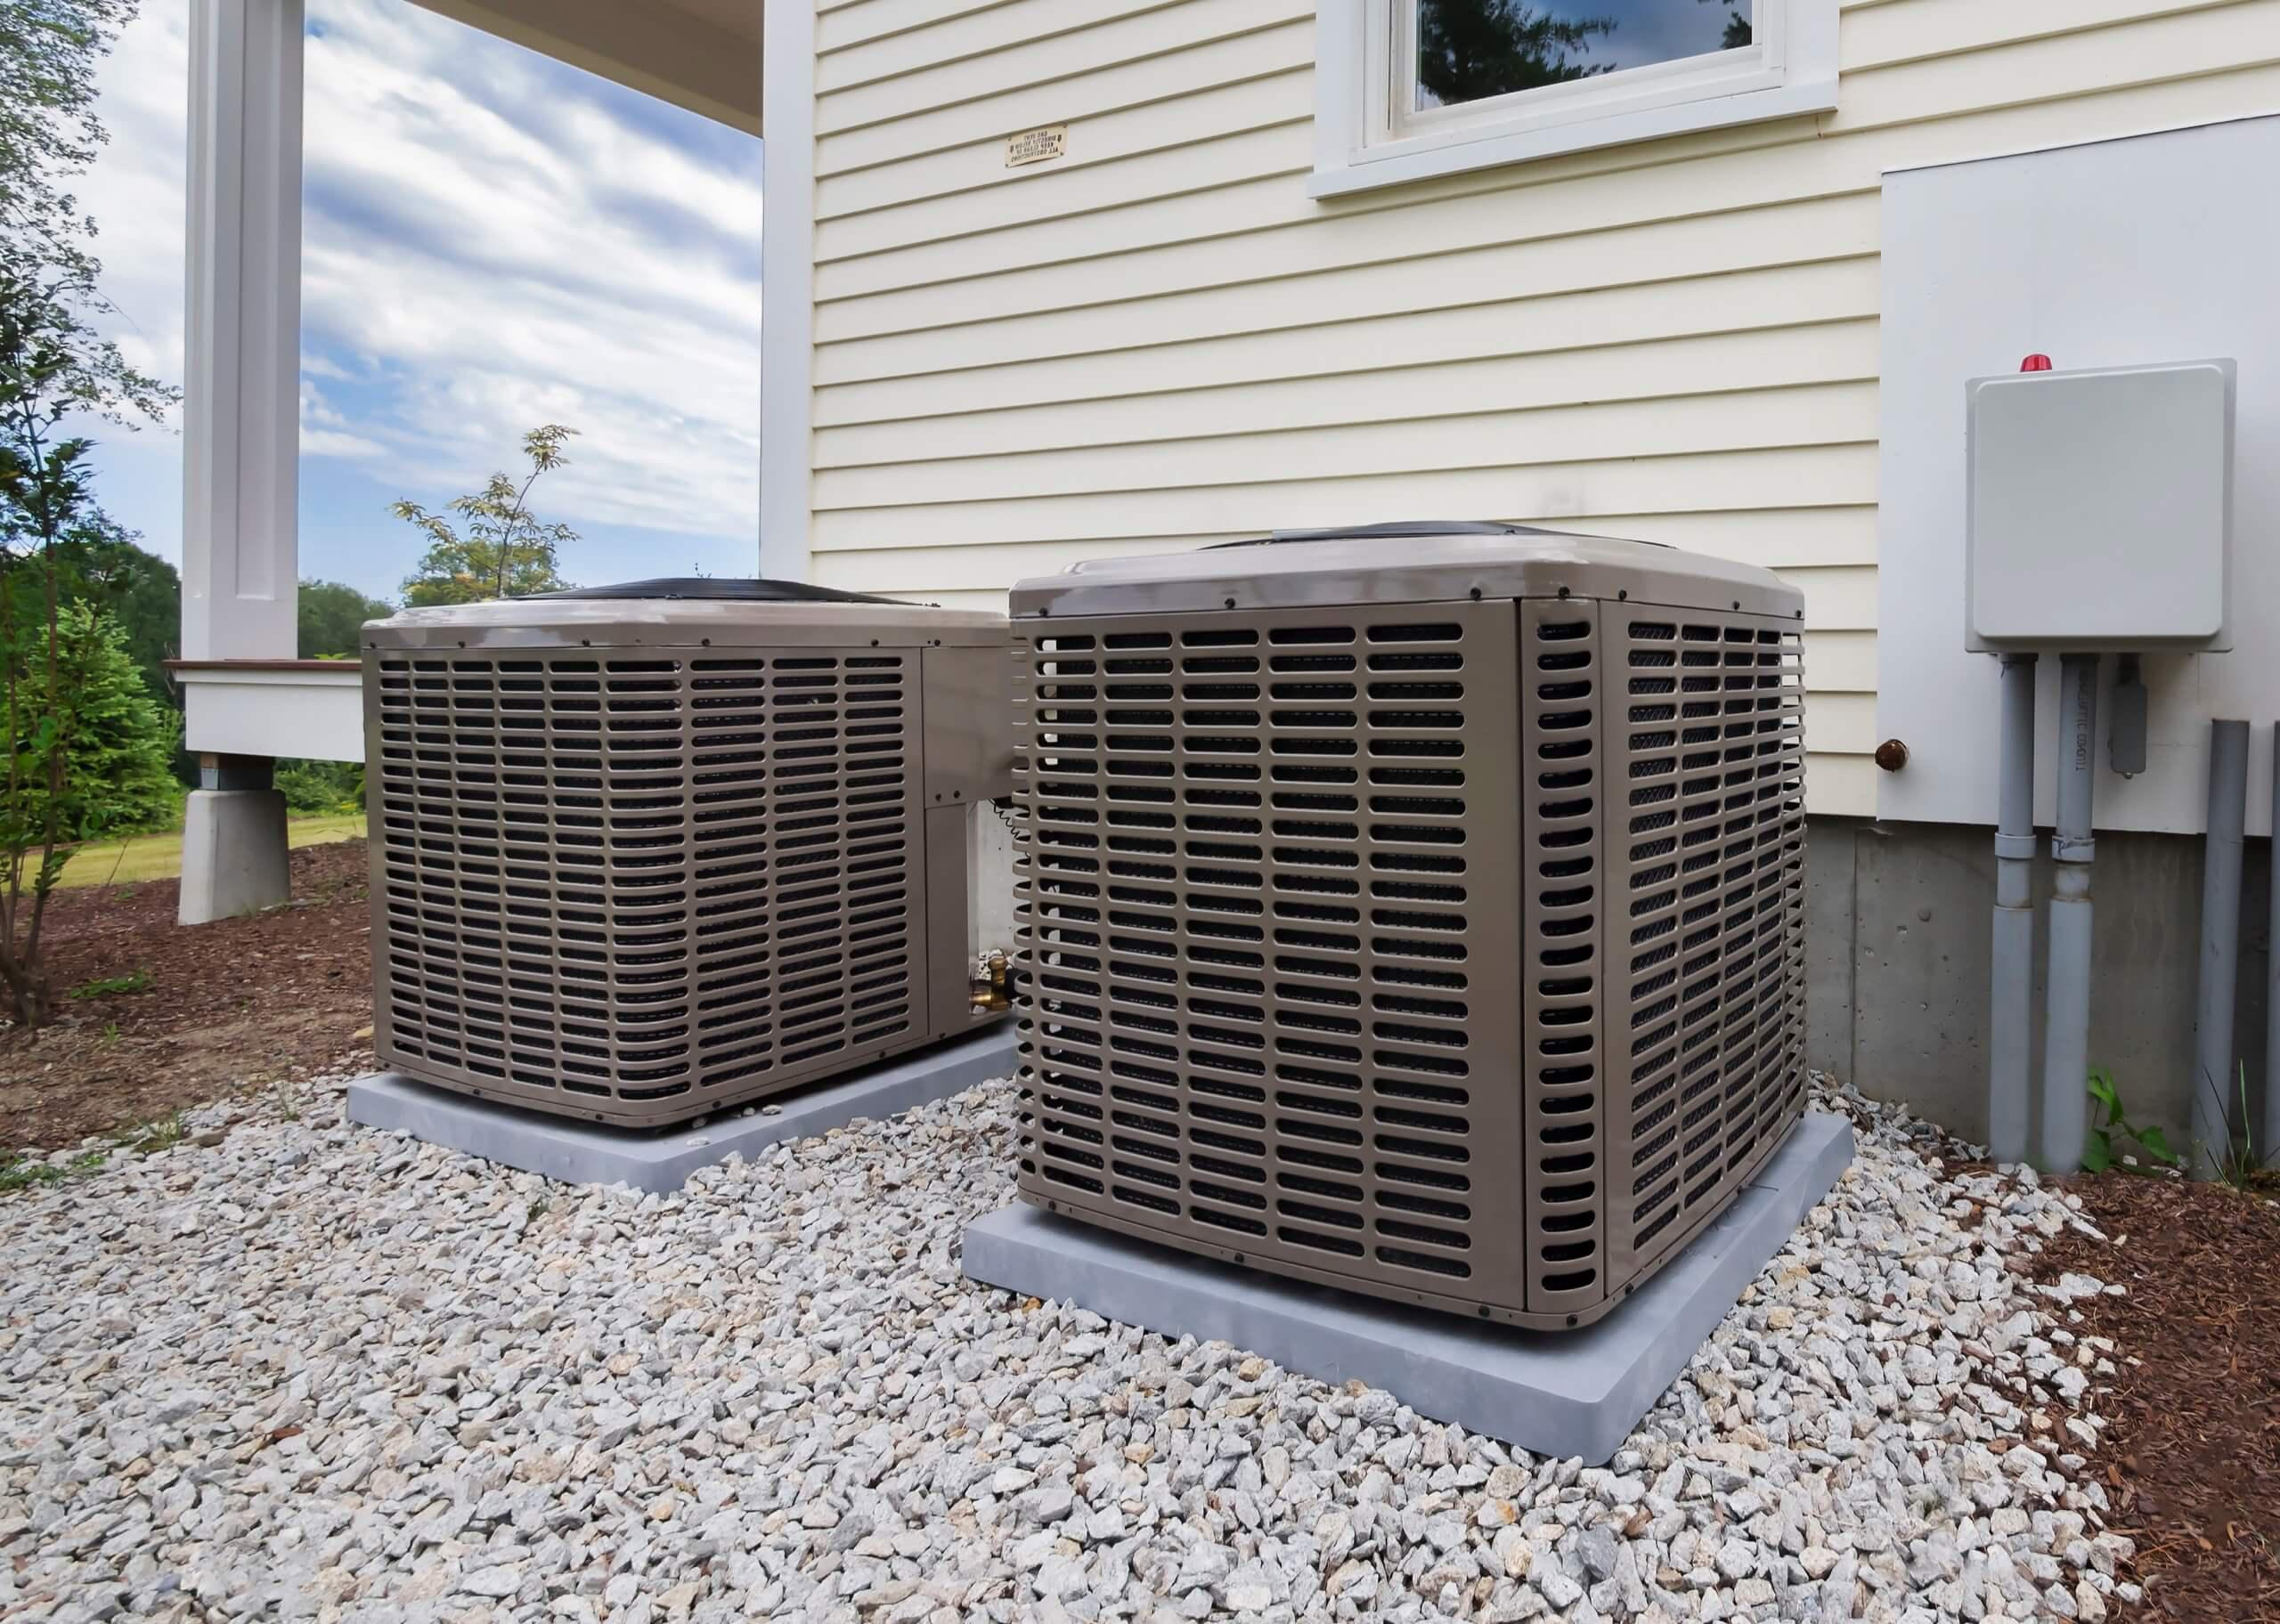 View on two air conditioners beside a home